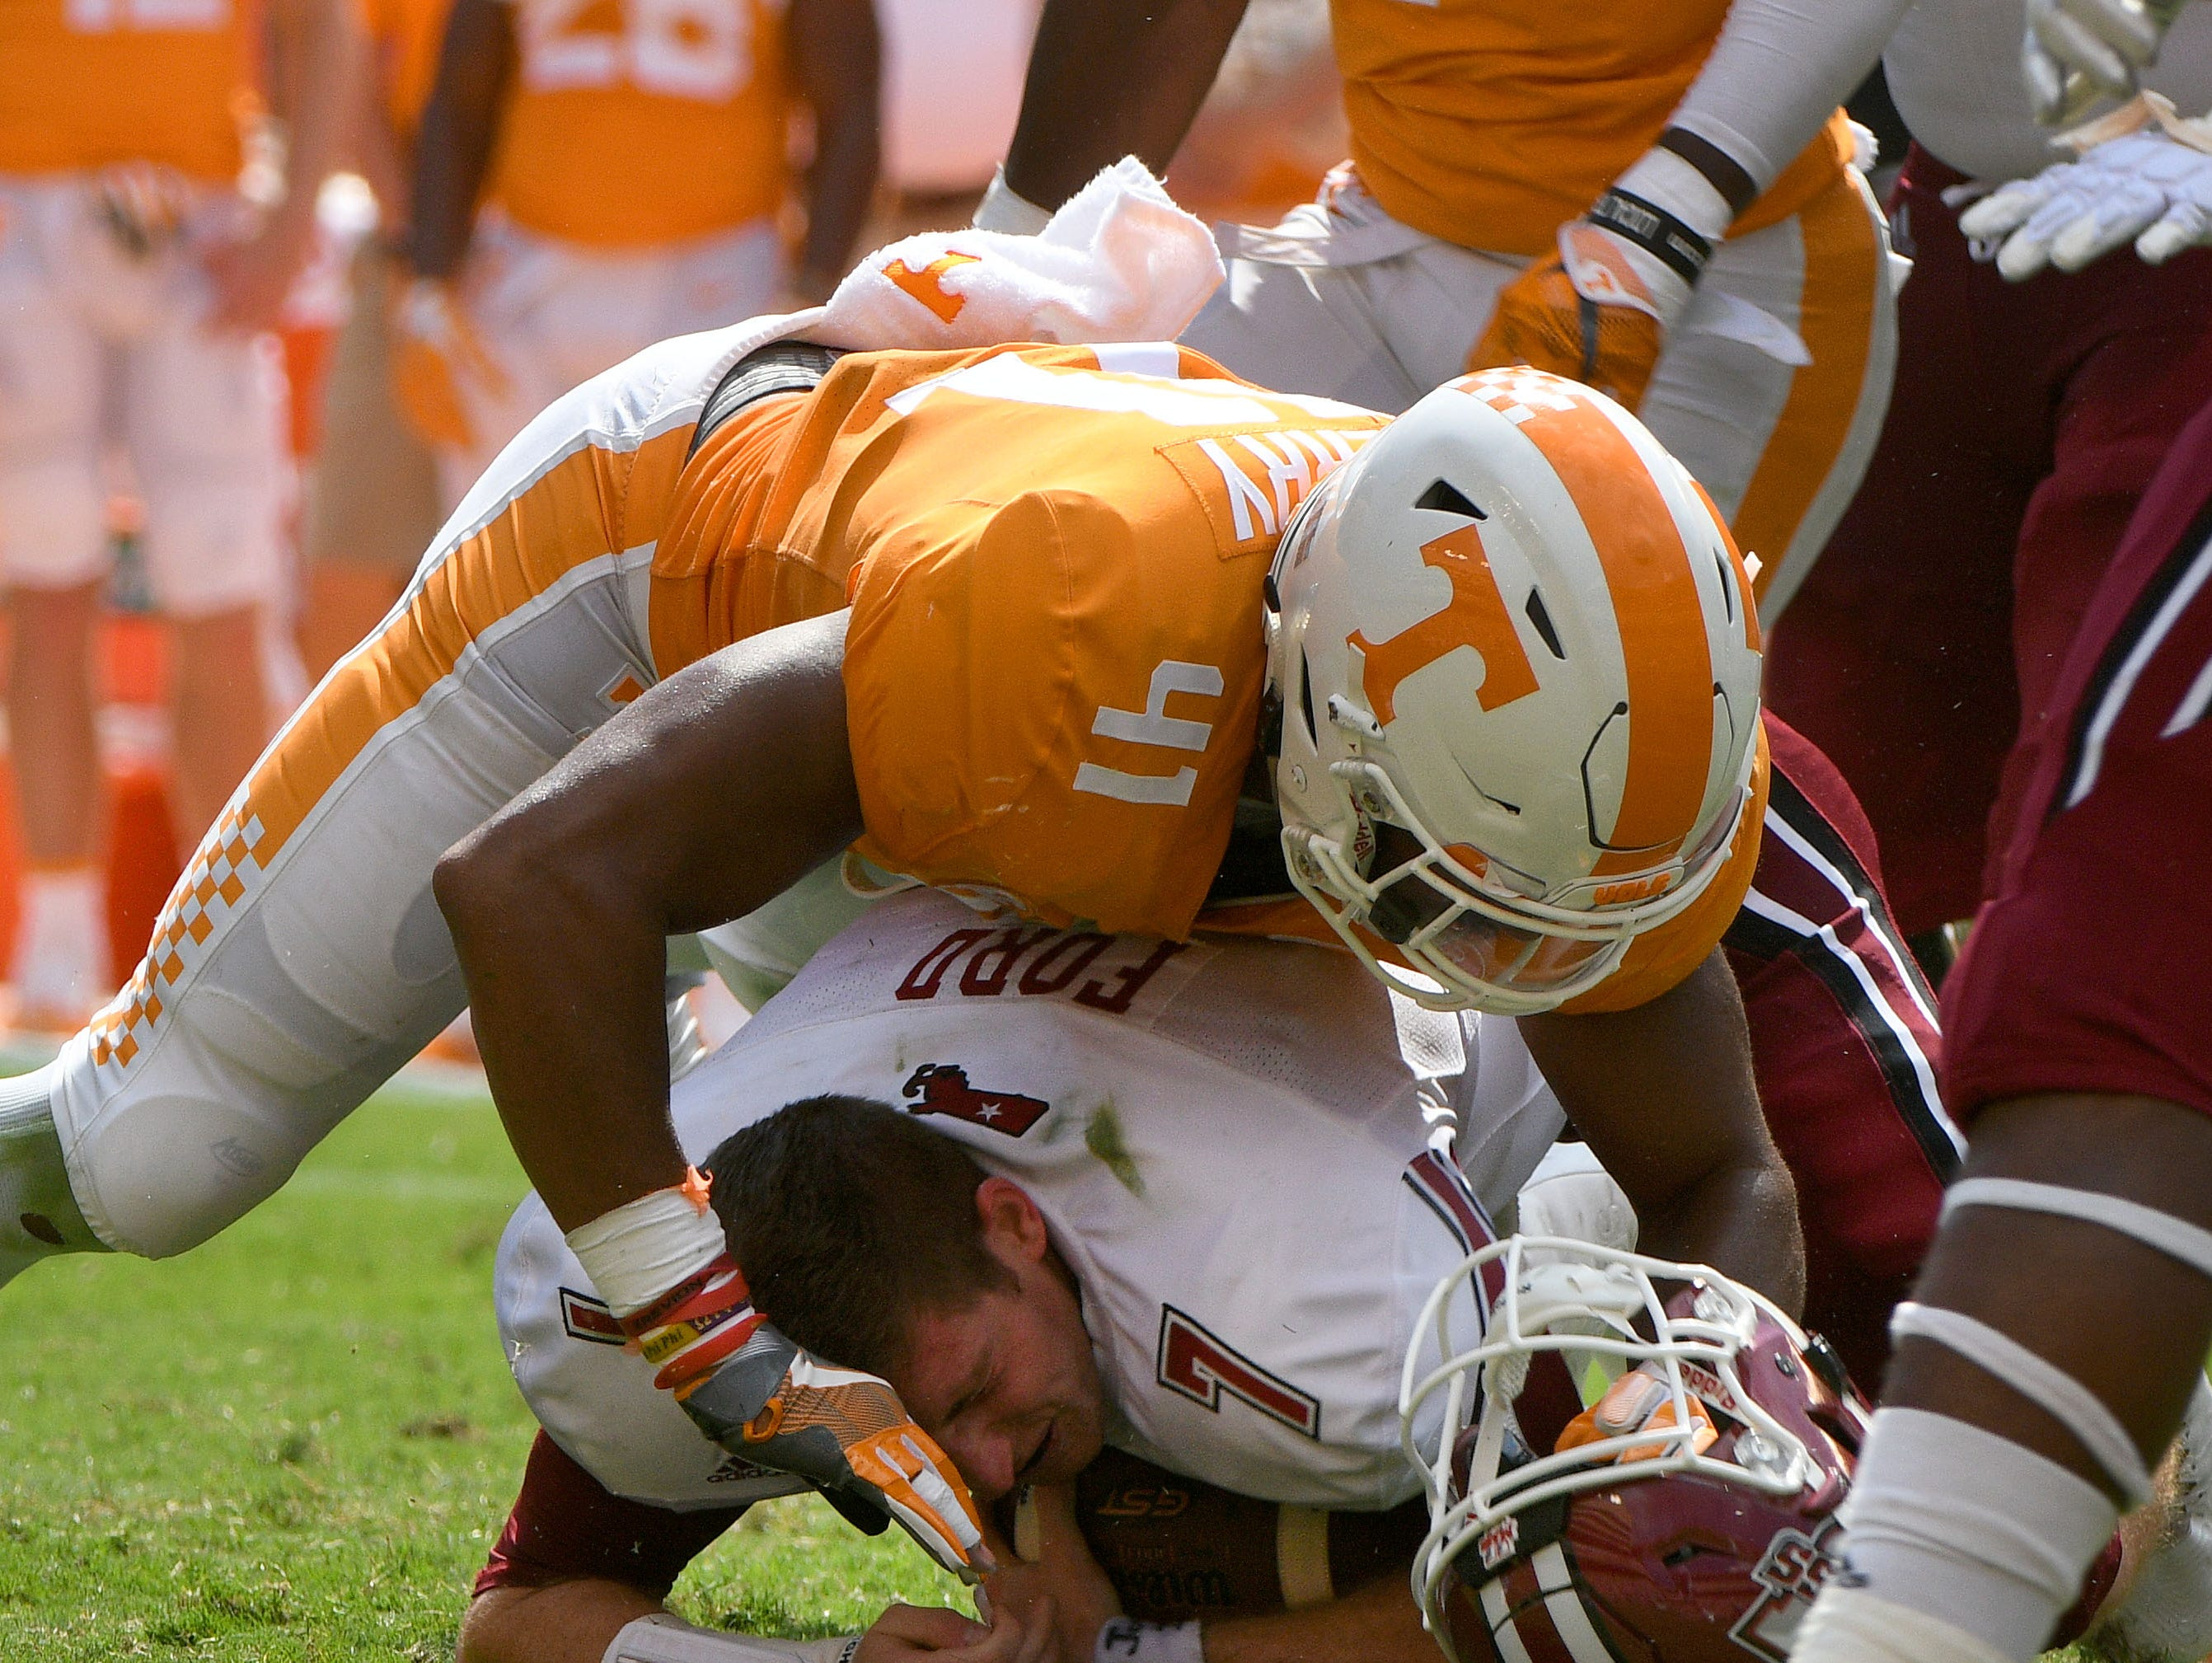 Tennessee linebacker Elliott Berry (41) sacks UMass quarterback Andrew Ford (7) while knocking off his helmet during the second half of their 17-13 win over UMass Minutemen Saturday, Sep. 23, 2017 at Neyland Stadium in Knoxville, Tenn.